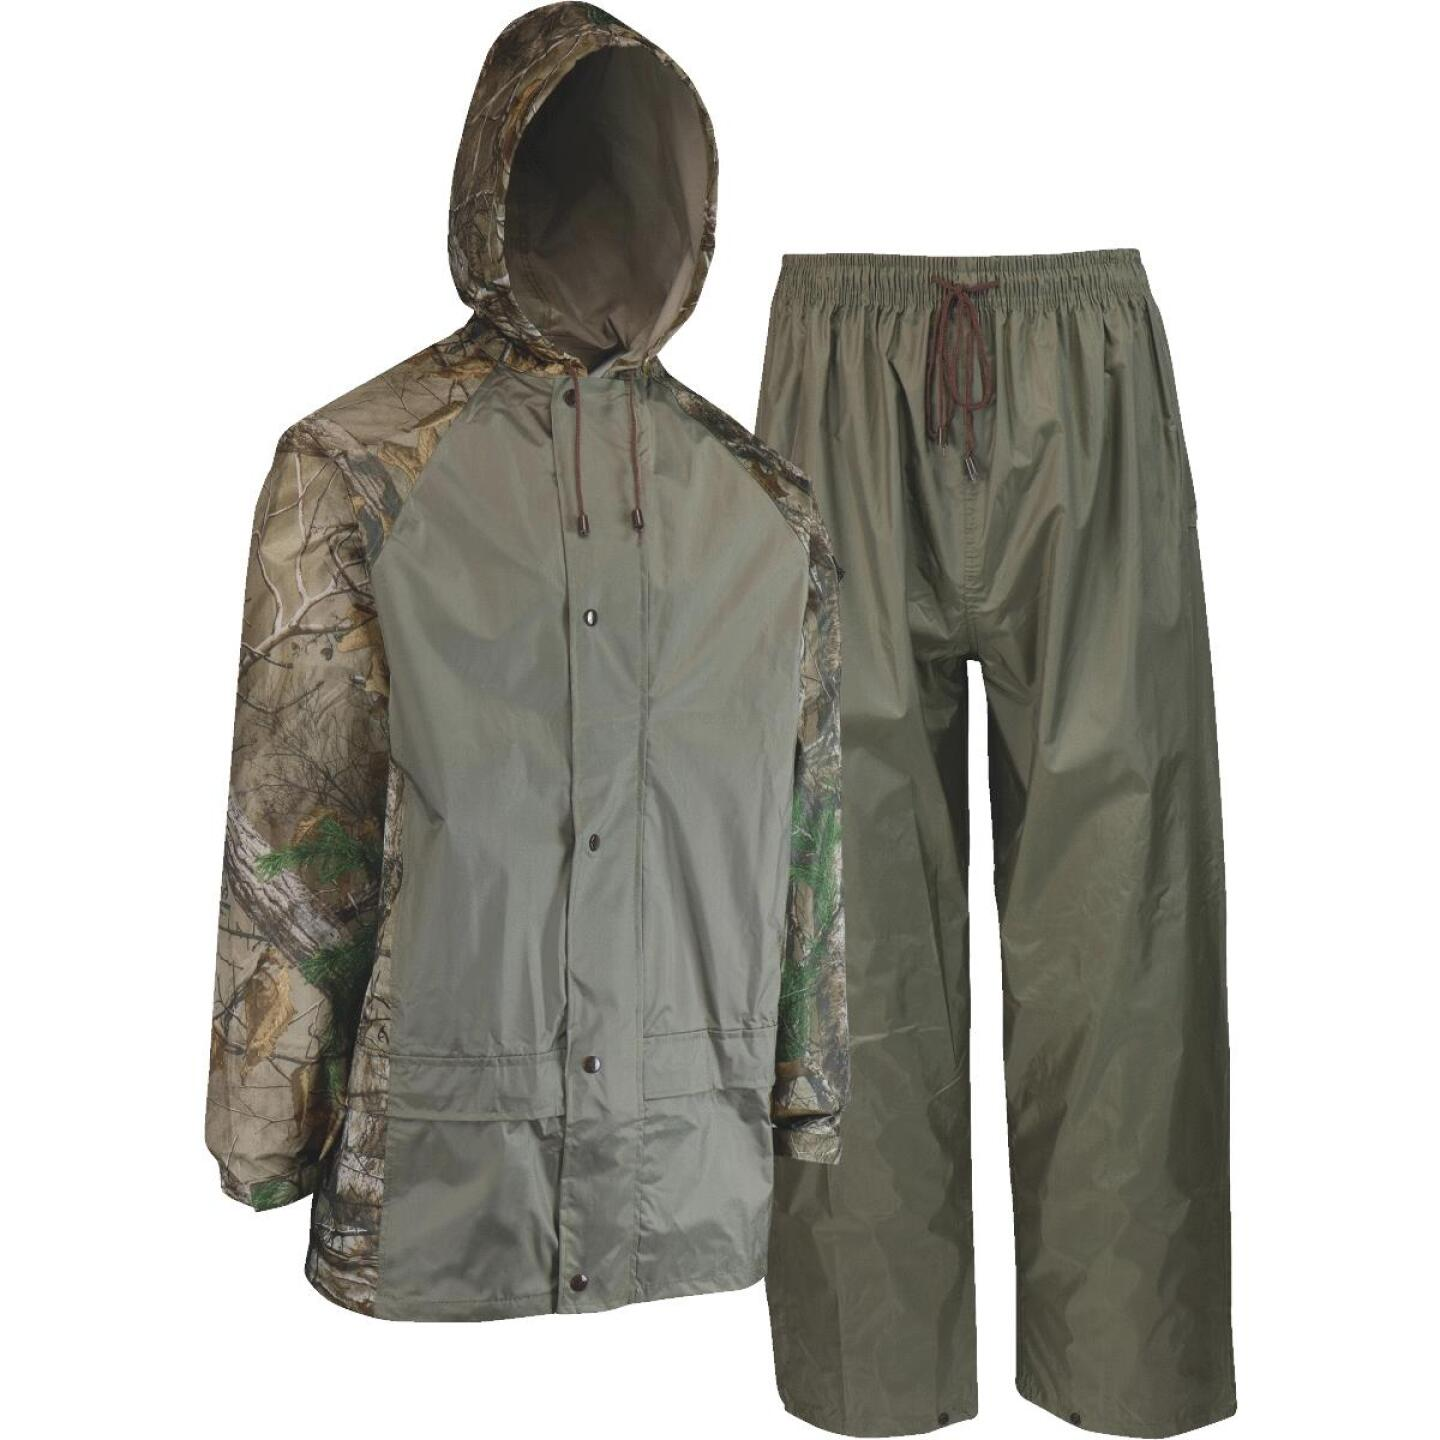 West Chester Large 2-Piece RealTree Camo Polyester Rain Suit Image 1